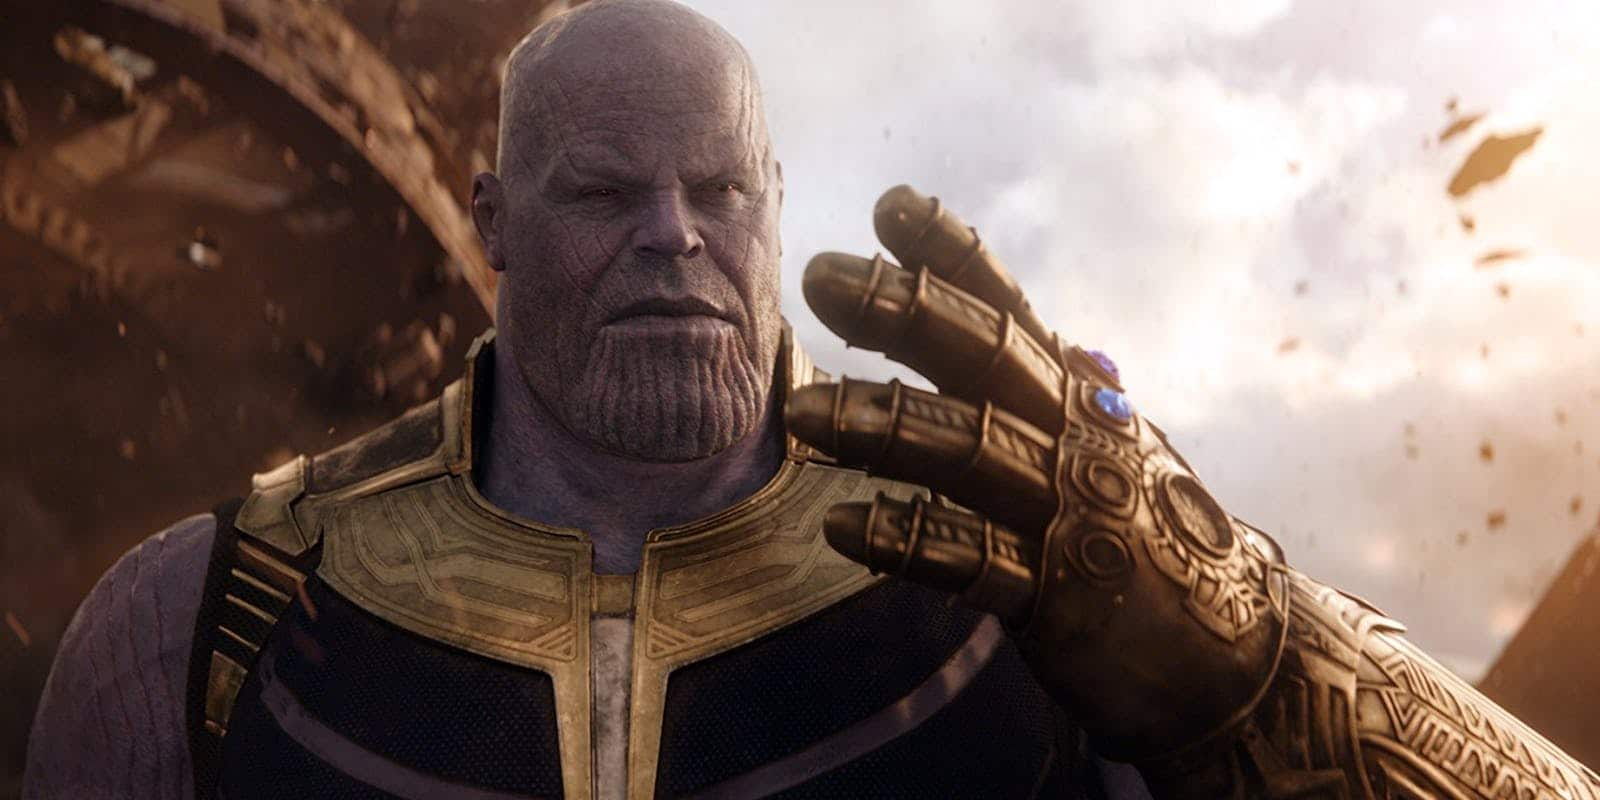 'Avengers: Infinity War' sets Marvel record on opening night